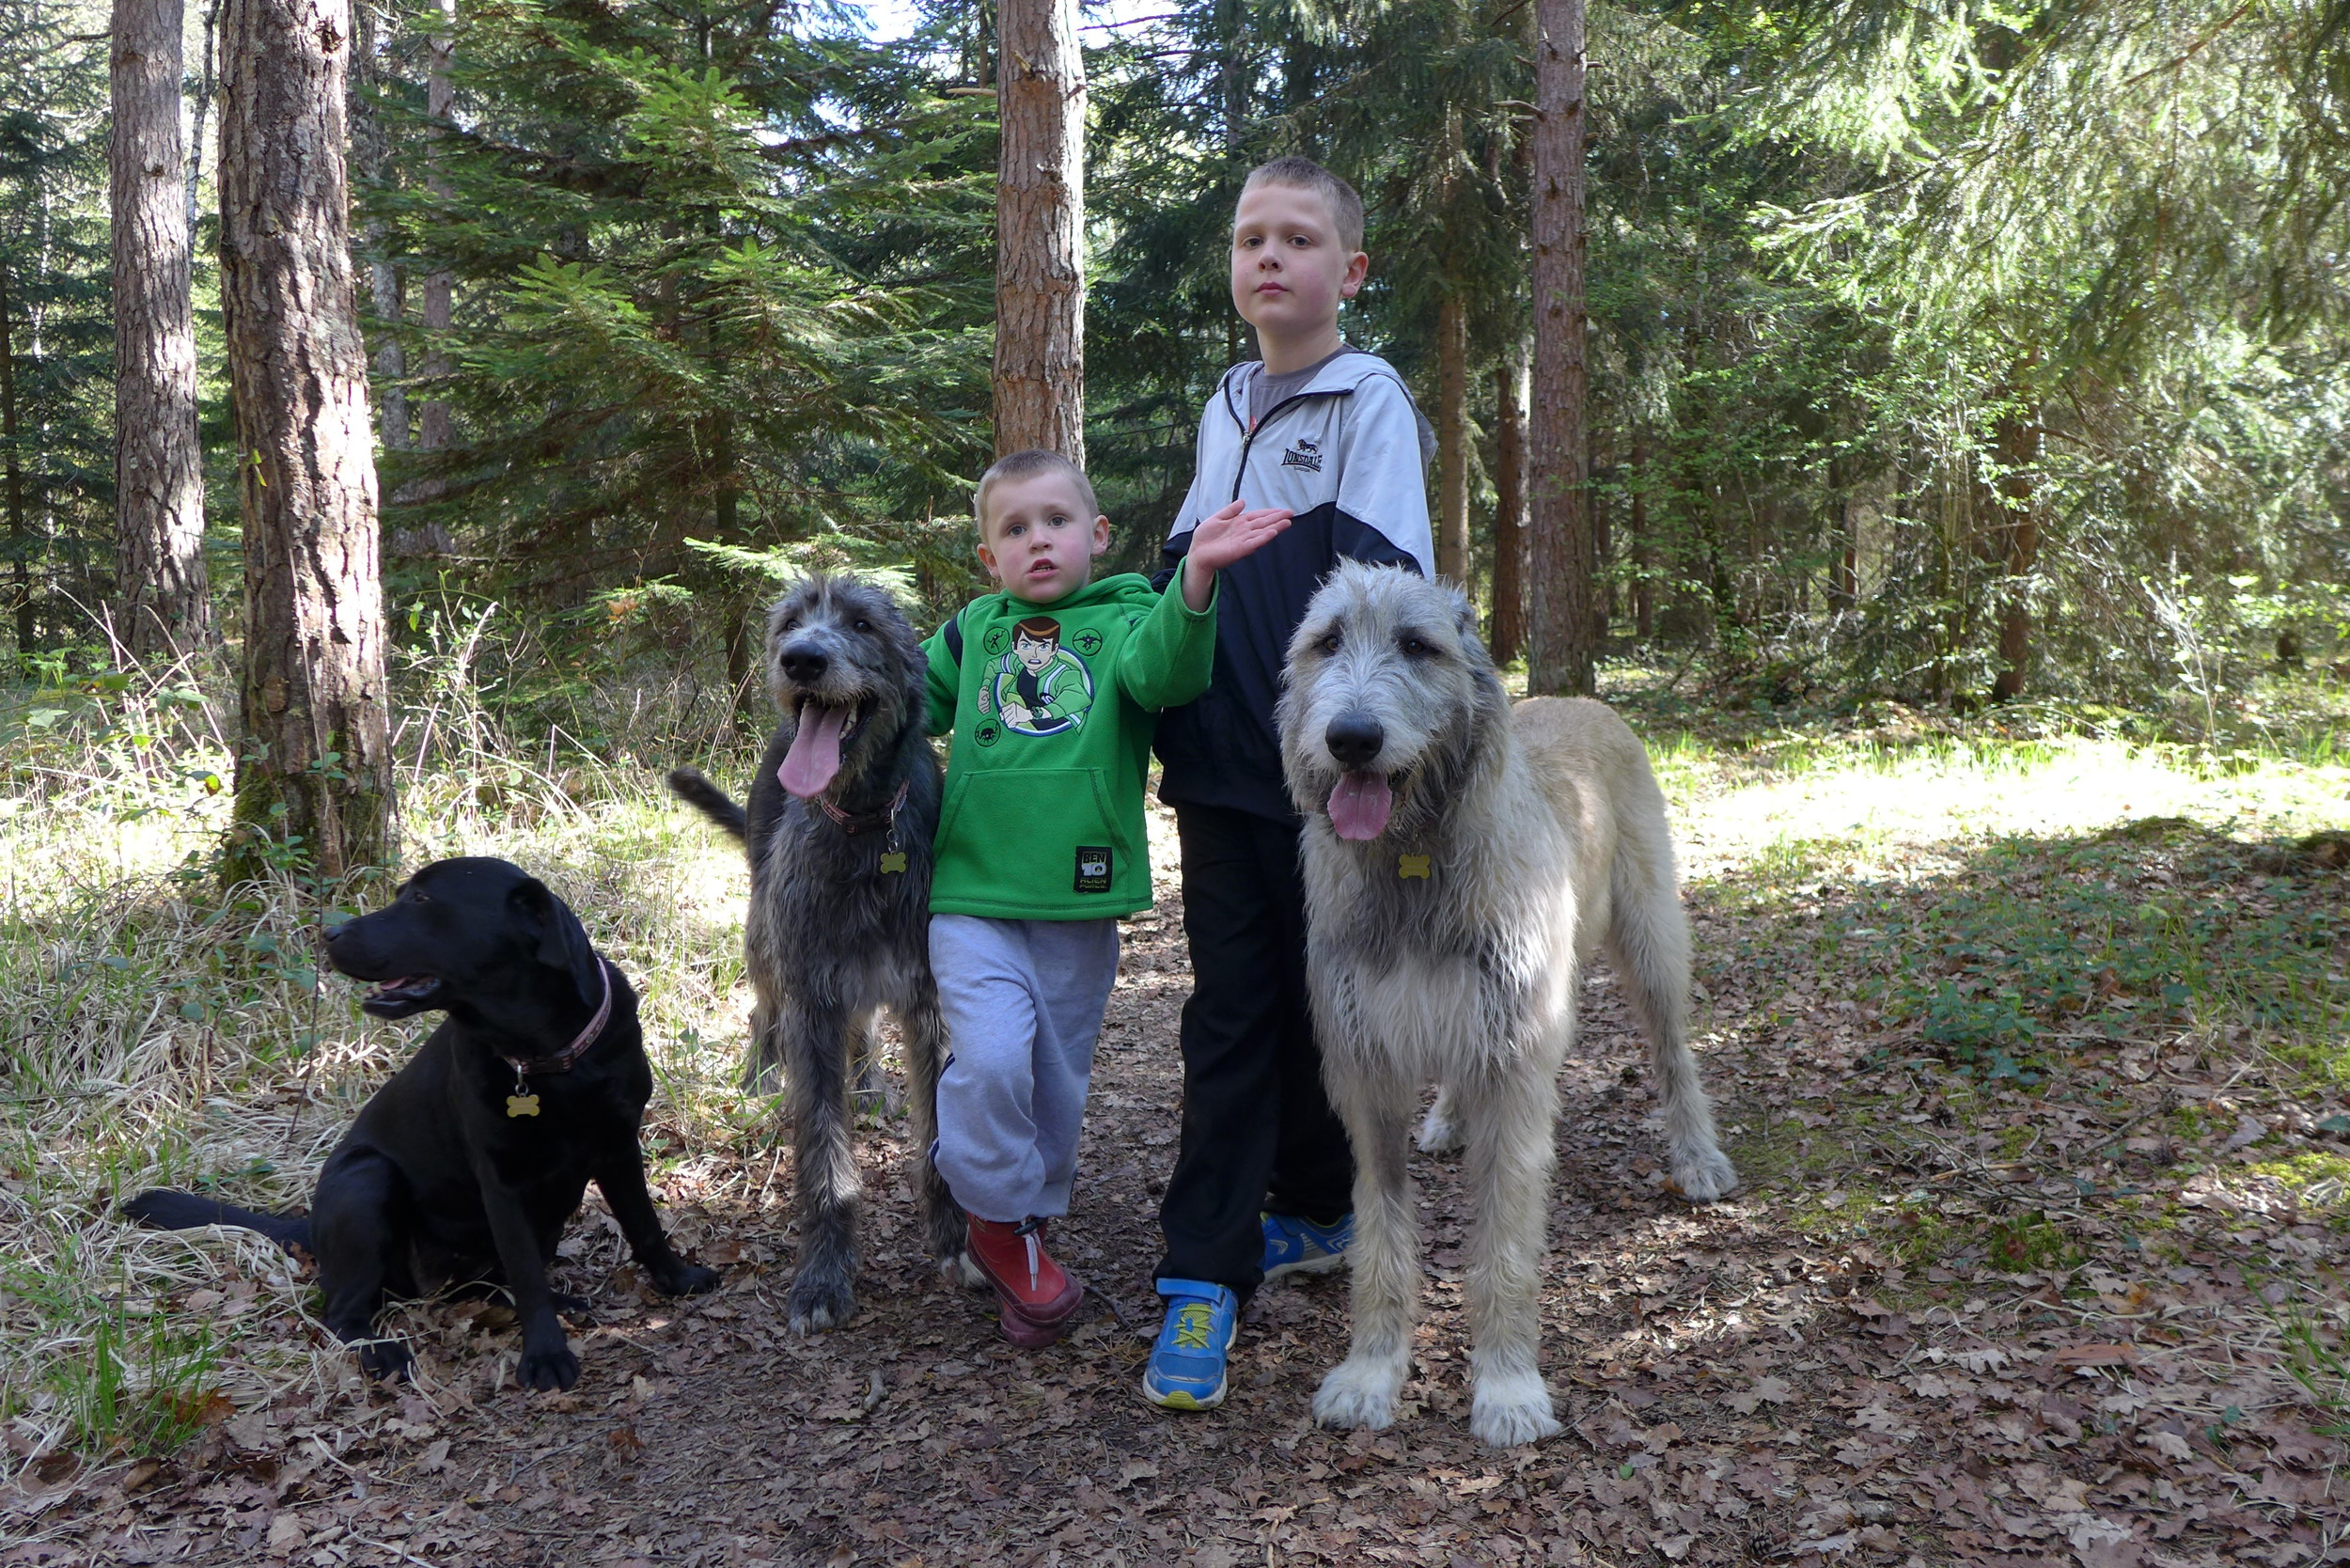 The dogs and children enjoying Melliant Forrest